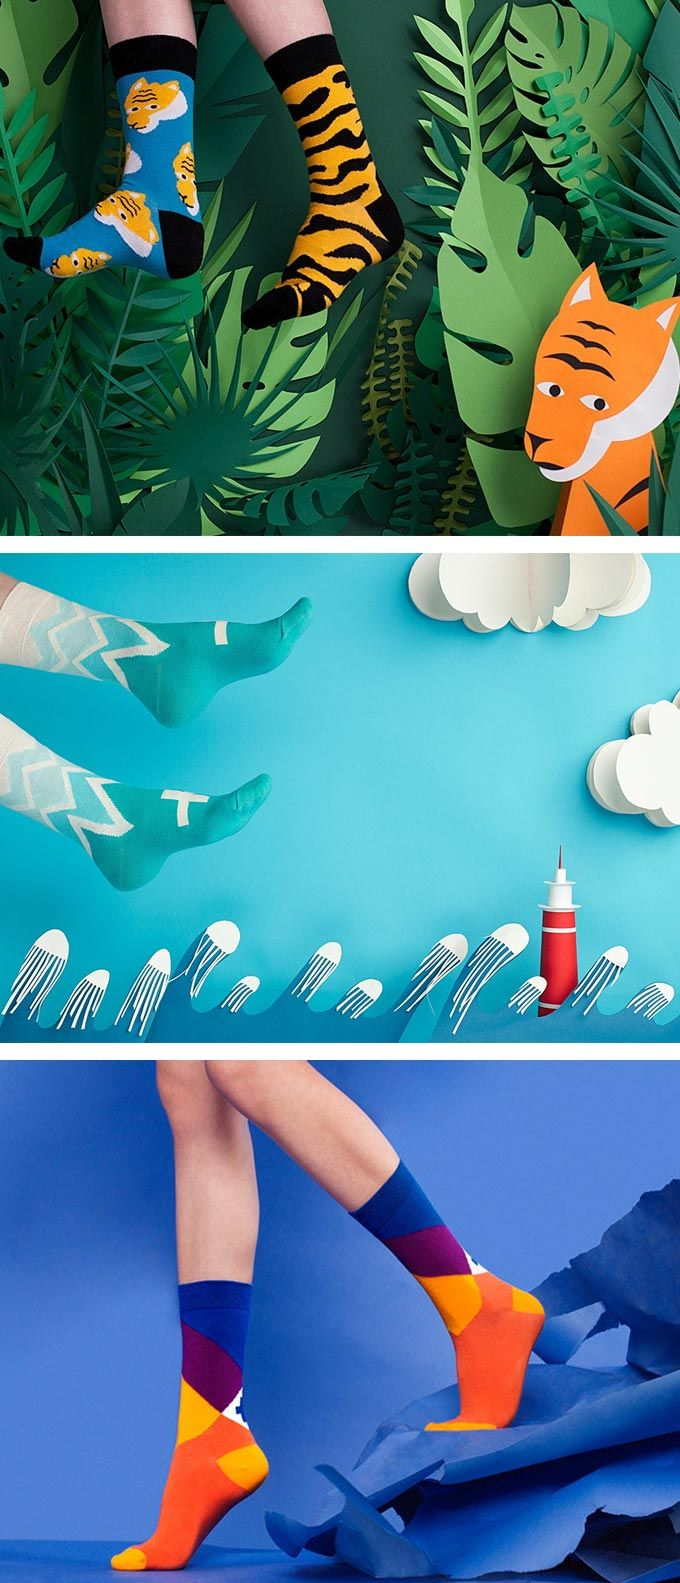 Sammy Icon's Giant Socks Invade Colorful Cut-Paper Landscapes